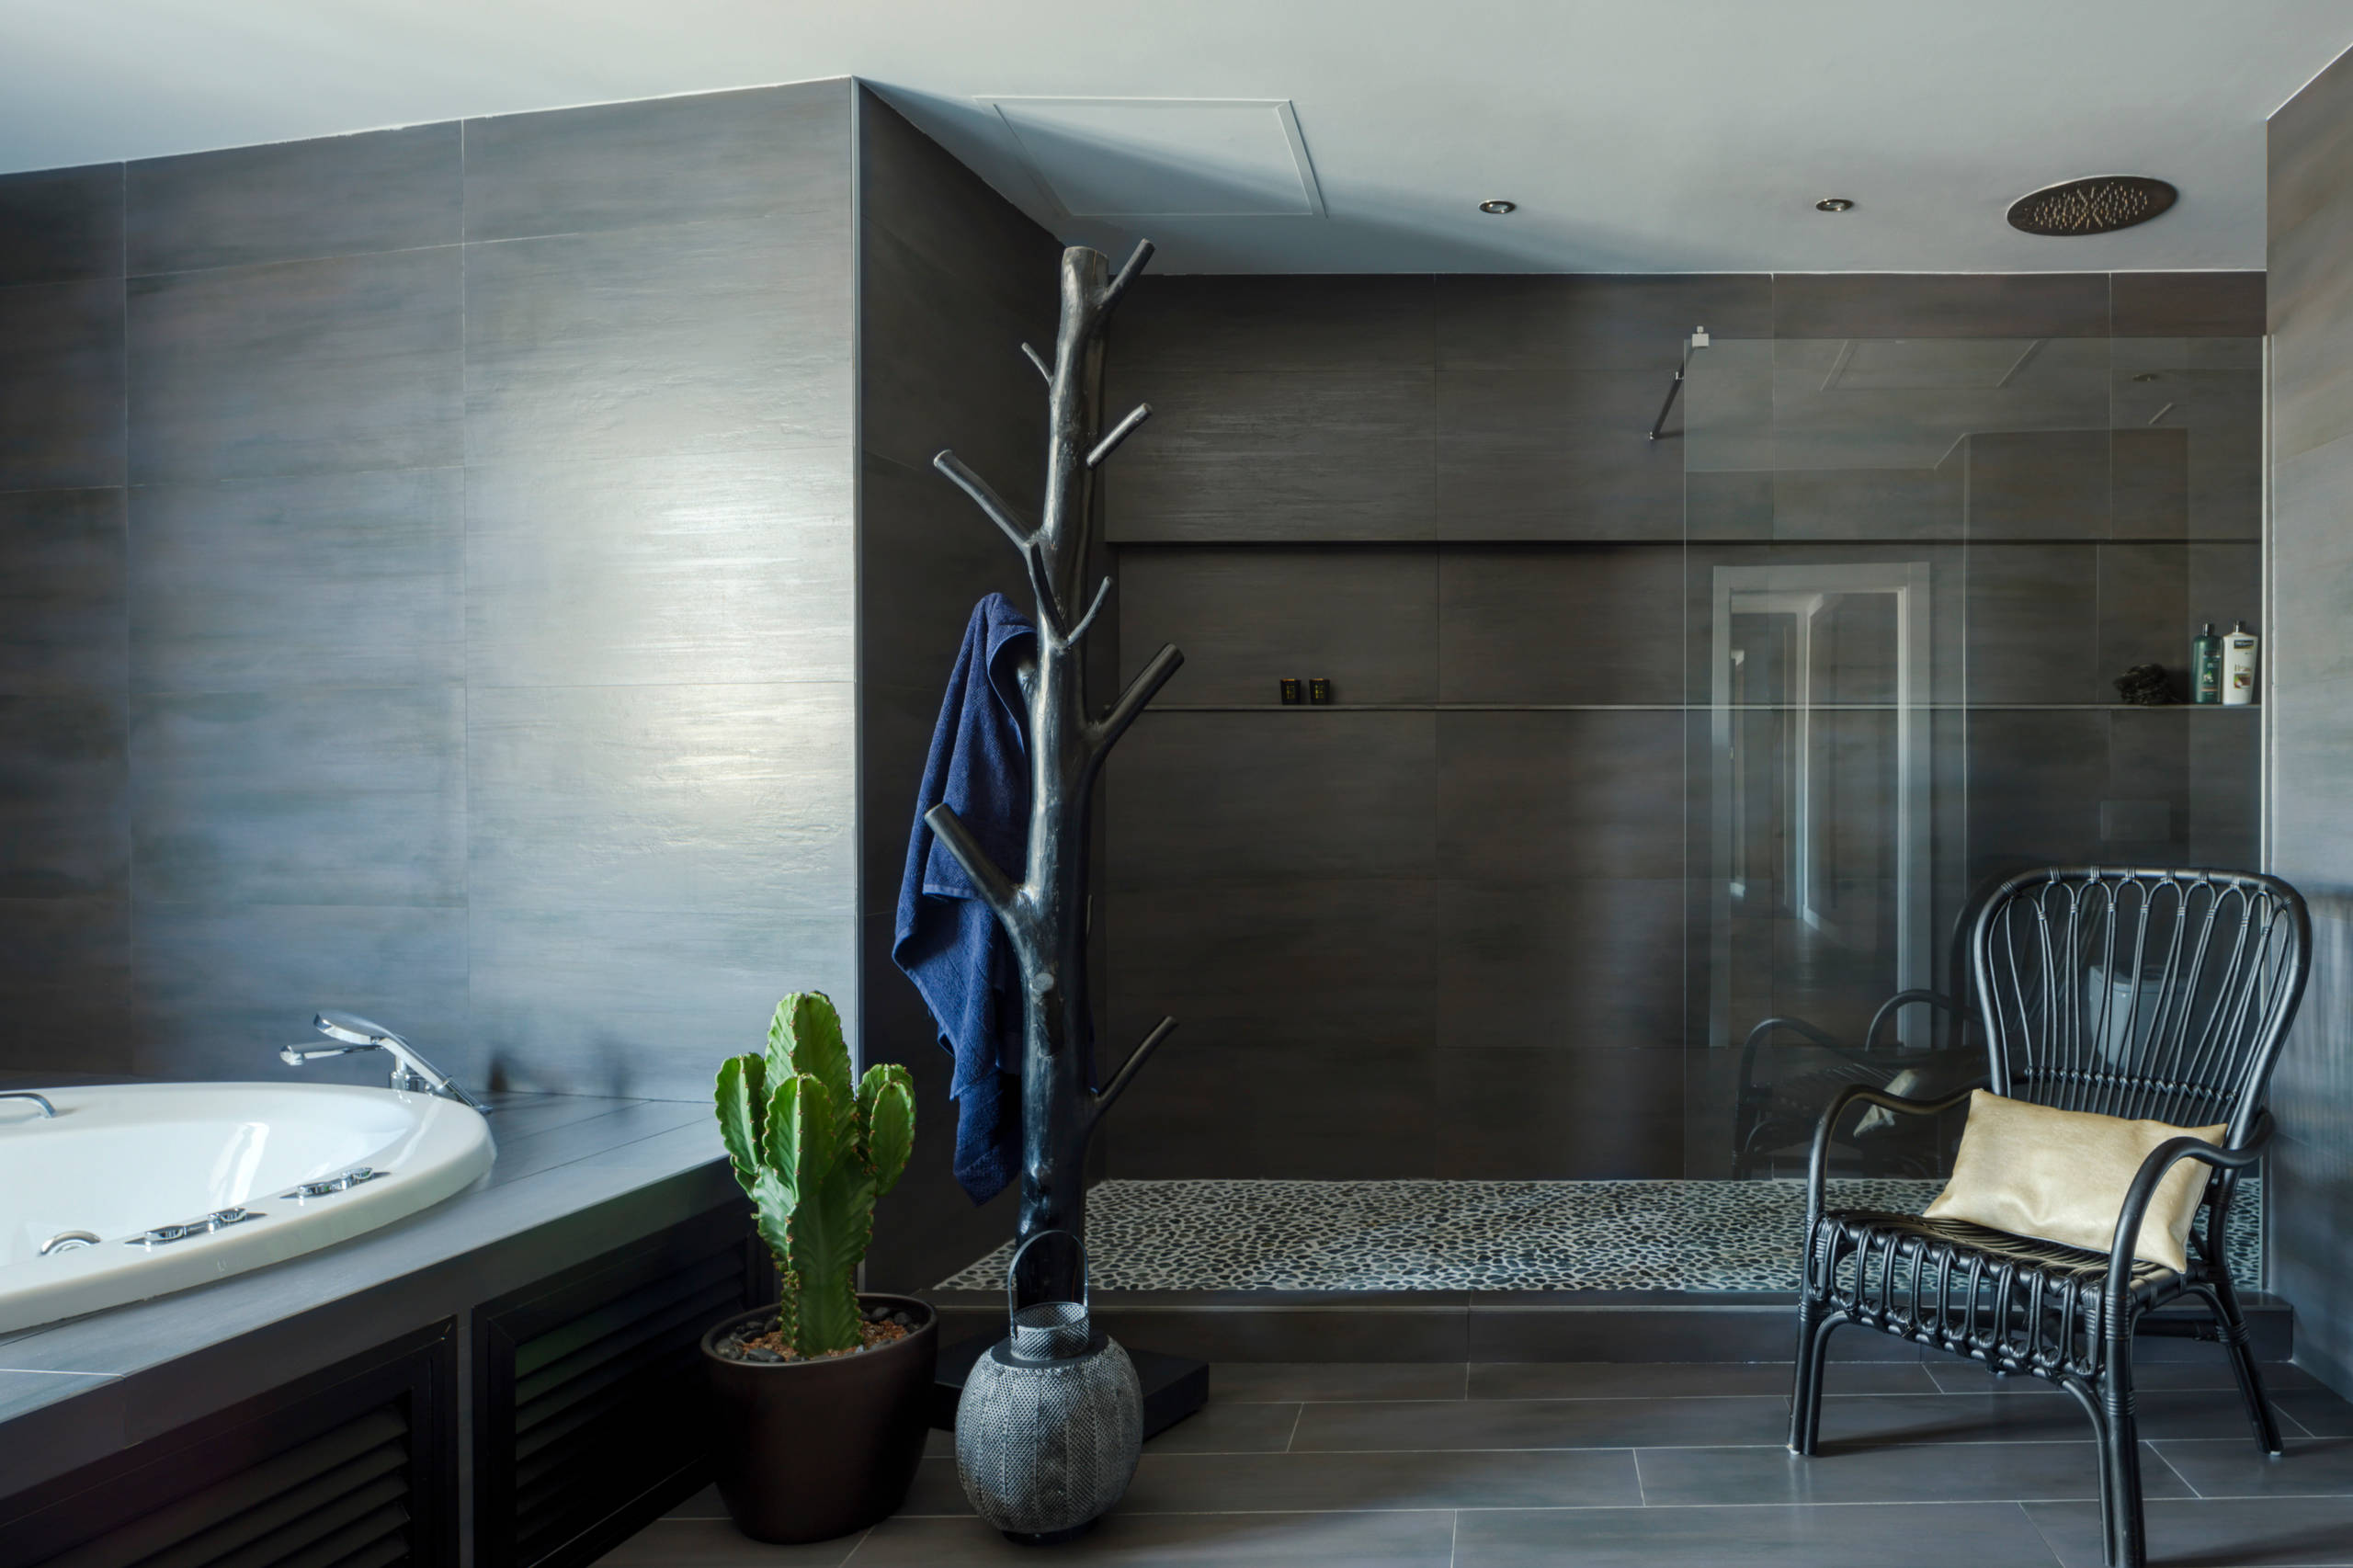 15 Stunning Eclectic Bathroom Designs That Will Inspire You